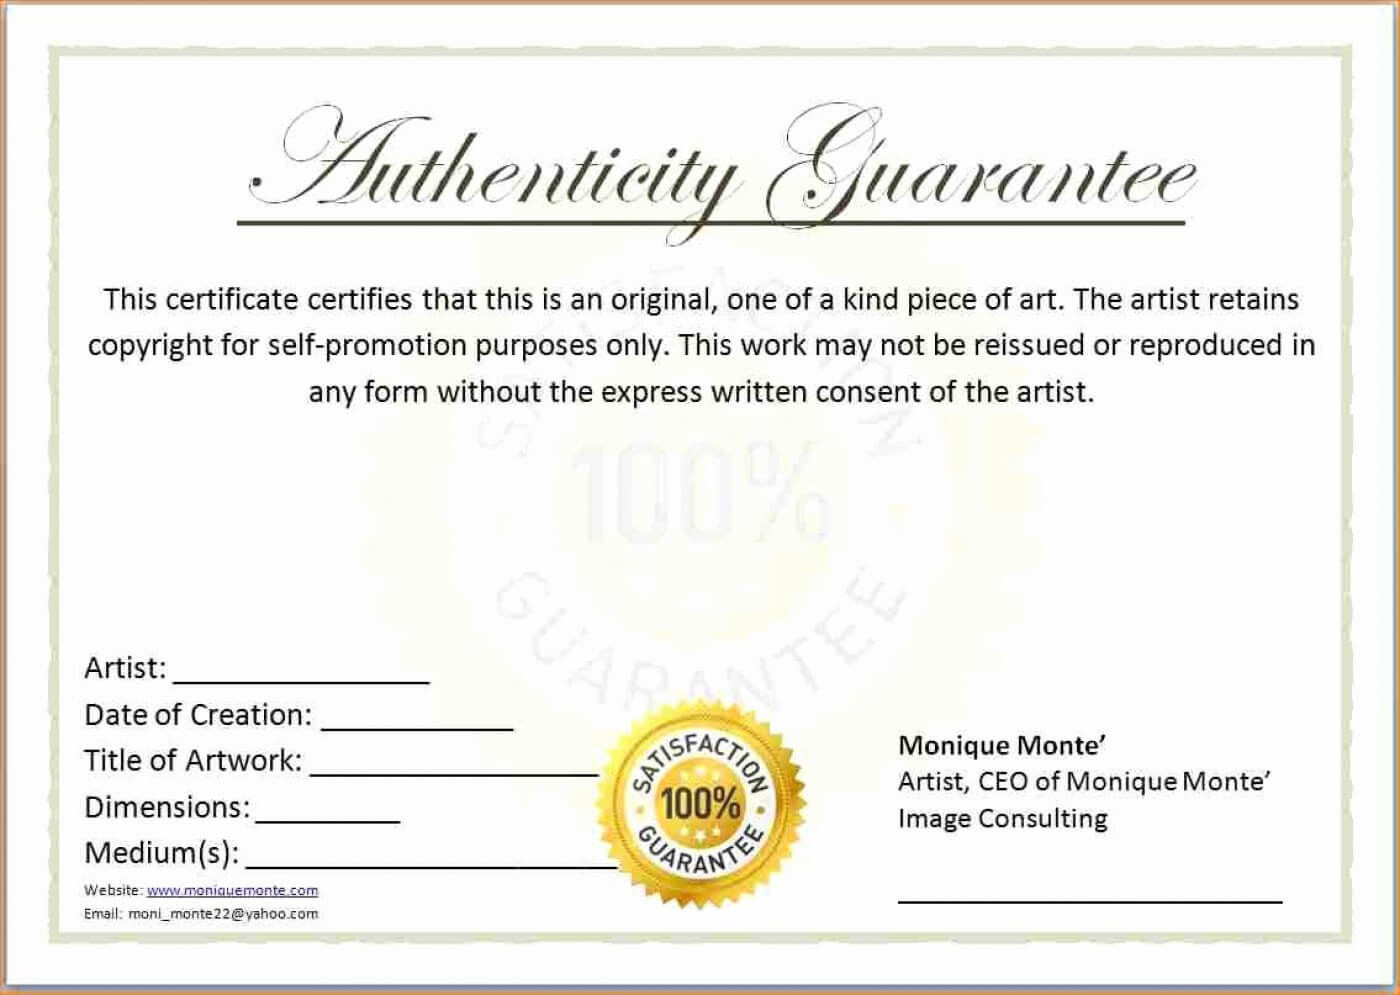 007 Certificate Of Authenticity Template Free Aplg With Certificate Of Authenticity Template